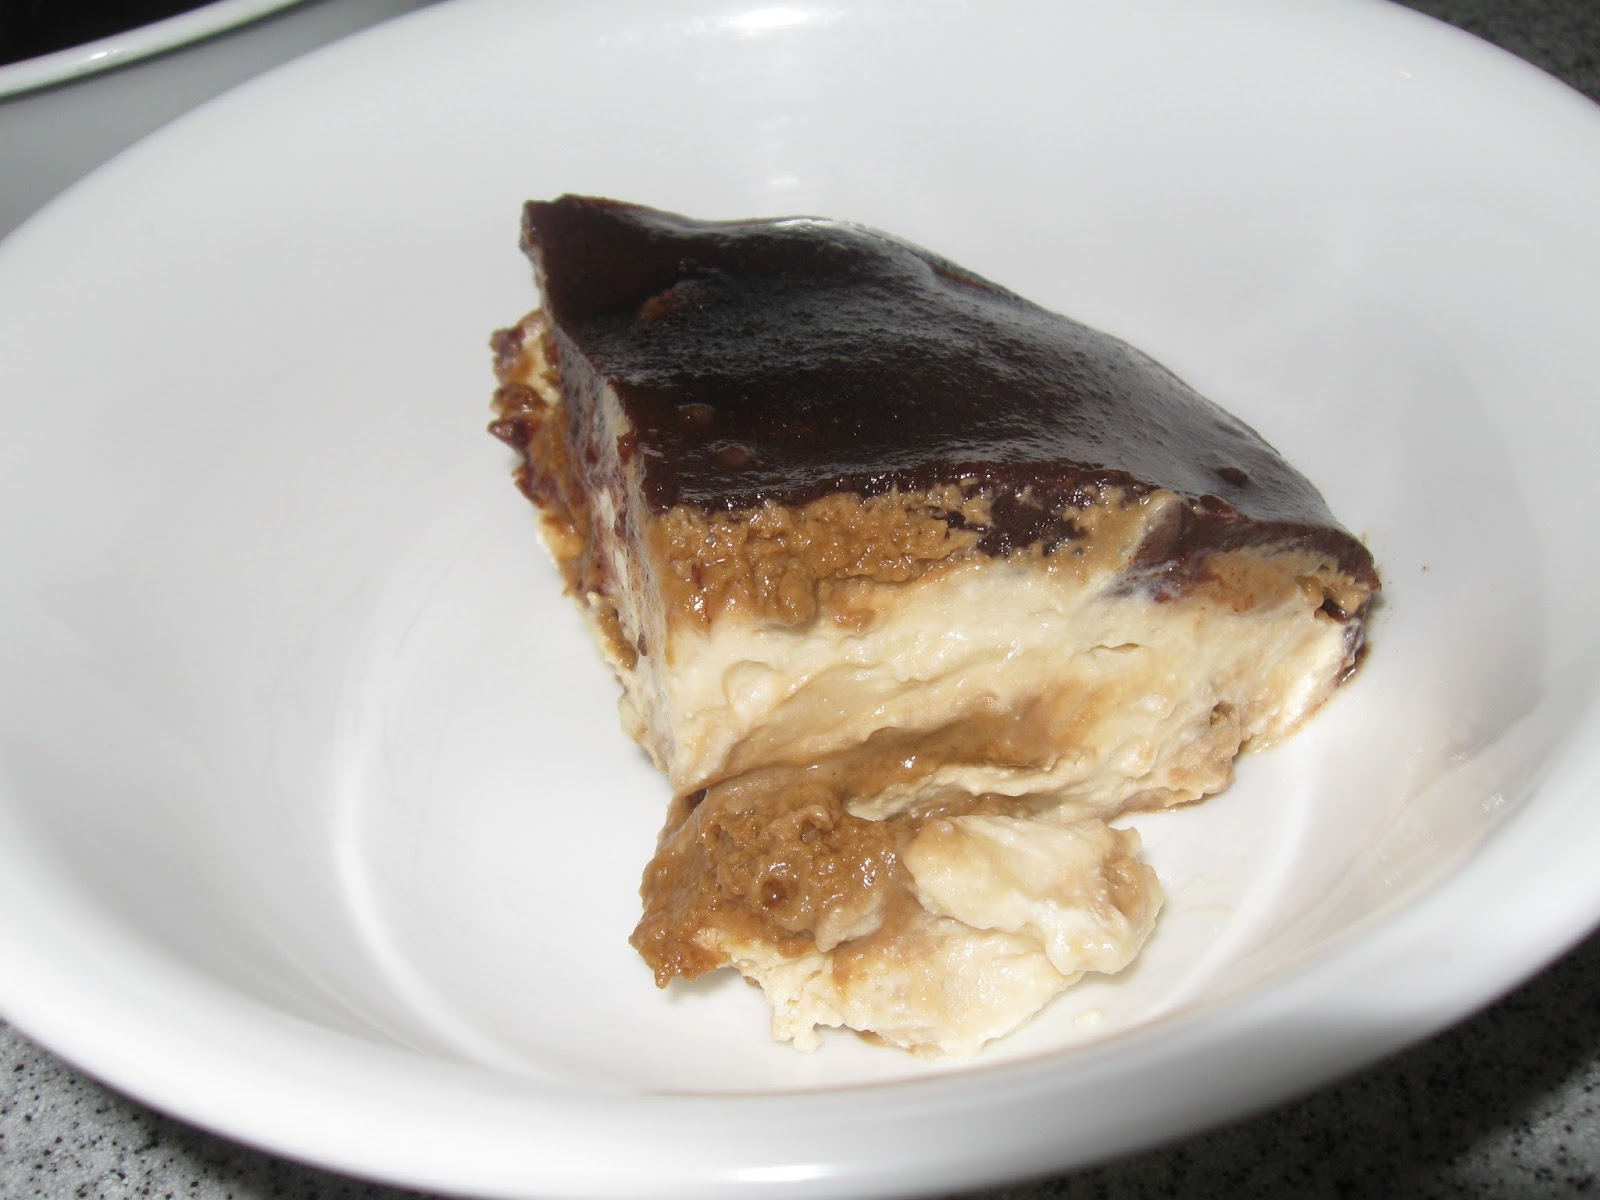 Vegan chocolate eclair cake recipe